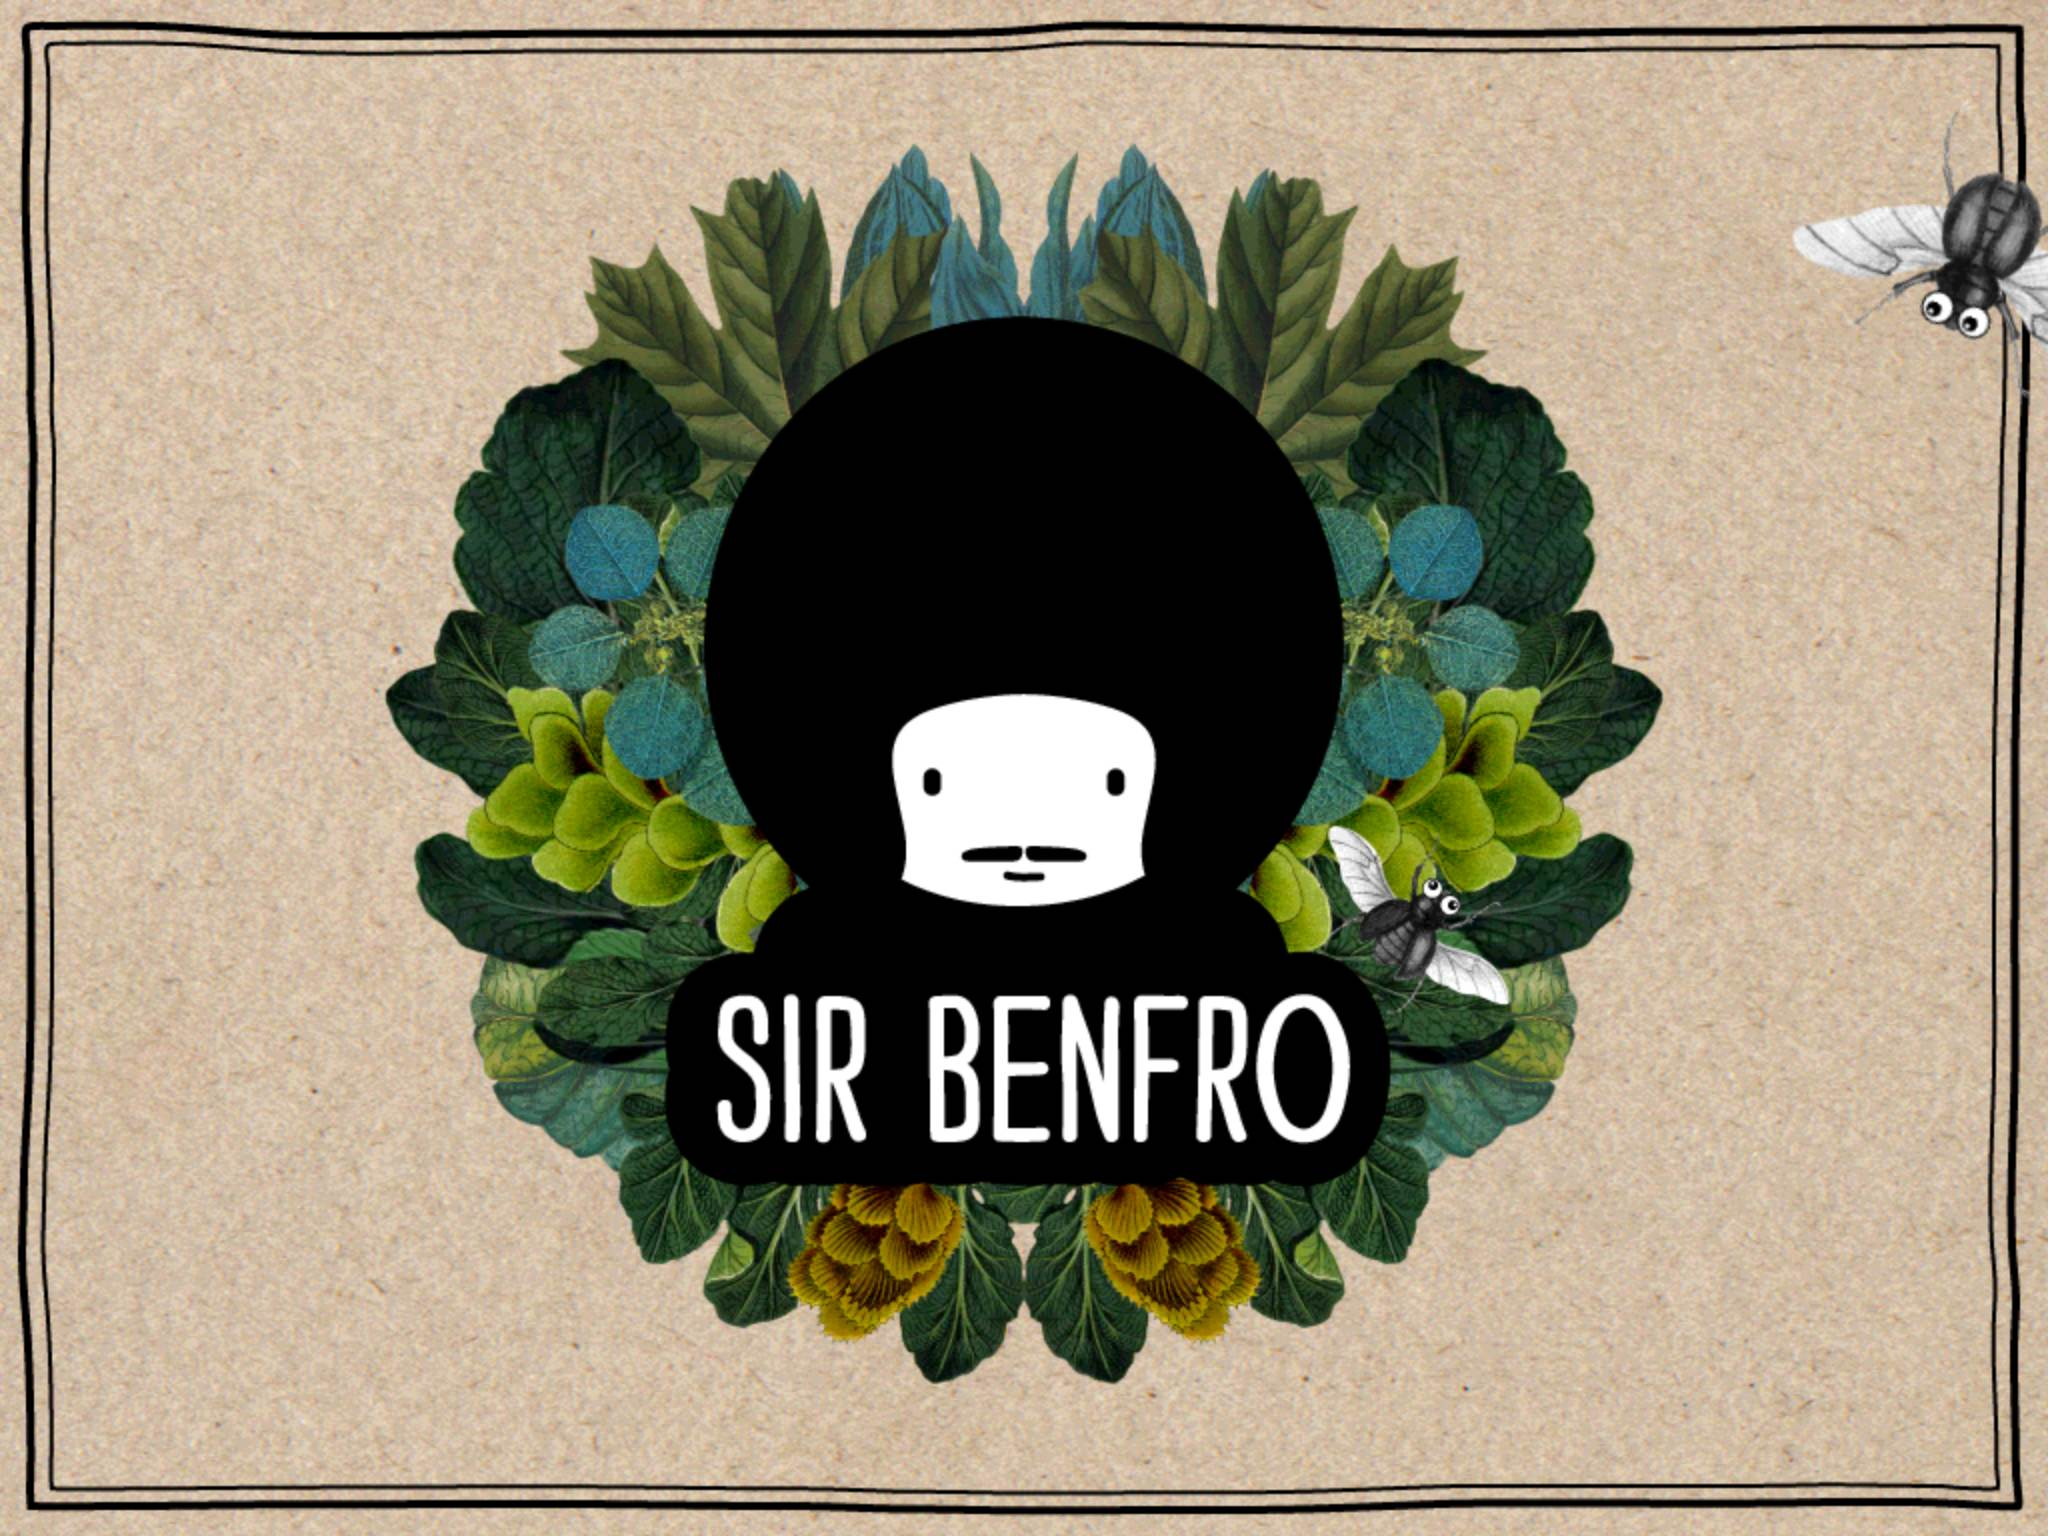 Sir Benfro application iPhone ipad meilleure enfant La Souris Grise tablette 1